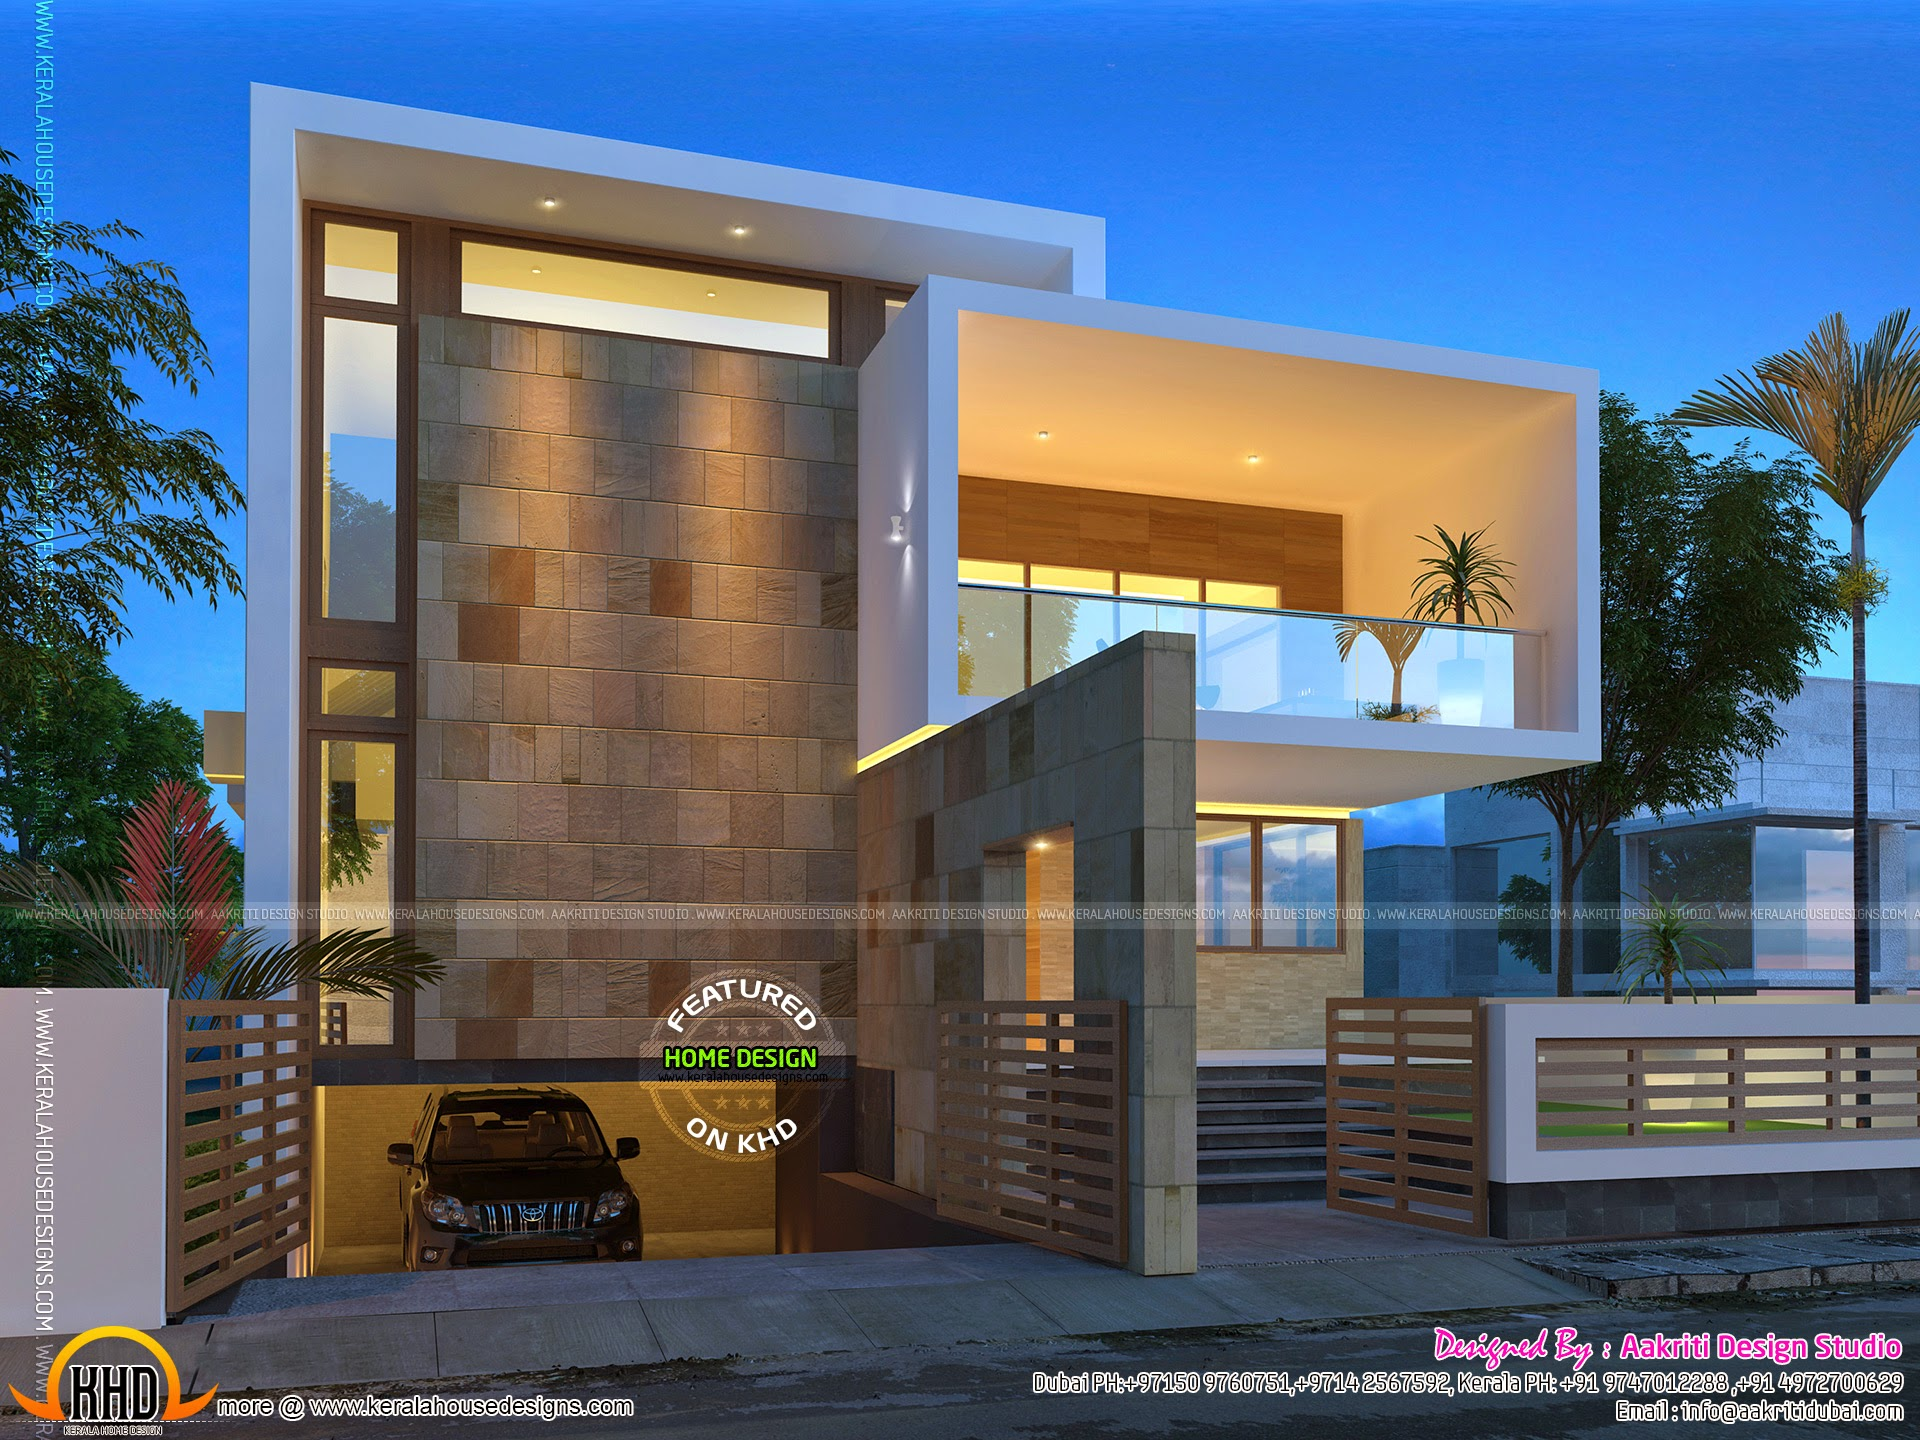 1000 images about My Home Design Ideas on Pinterest